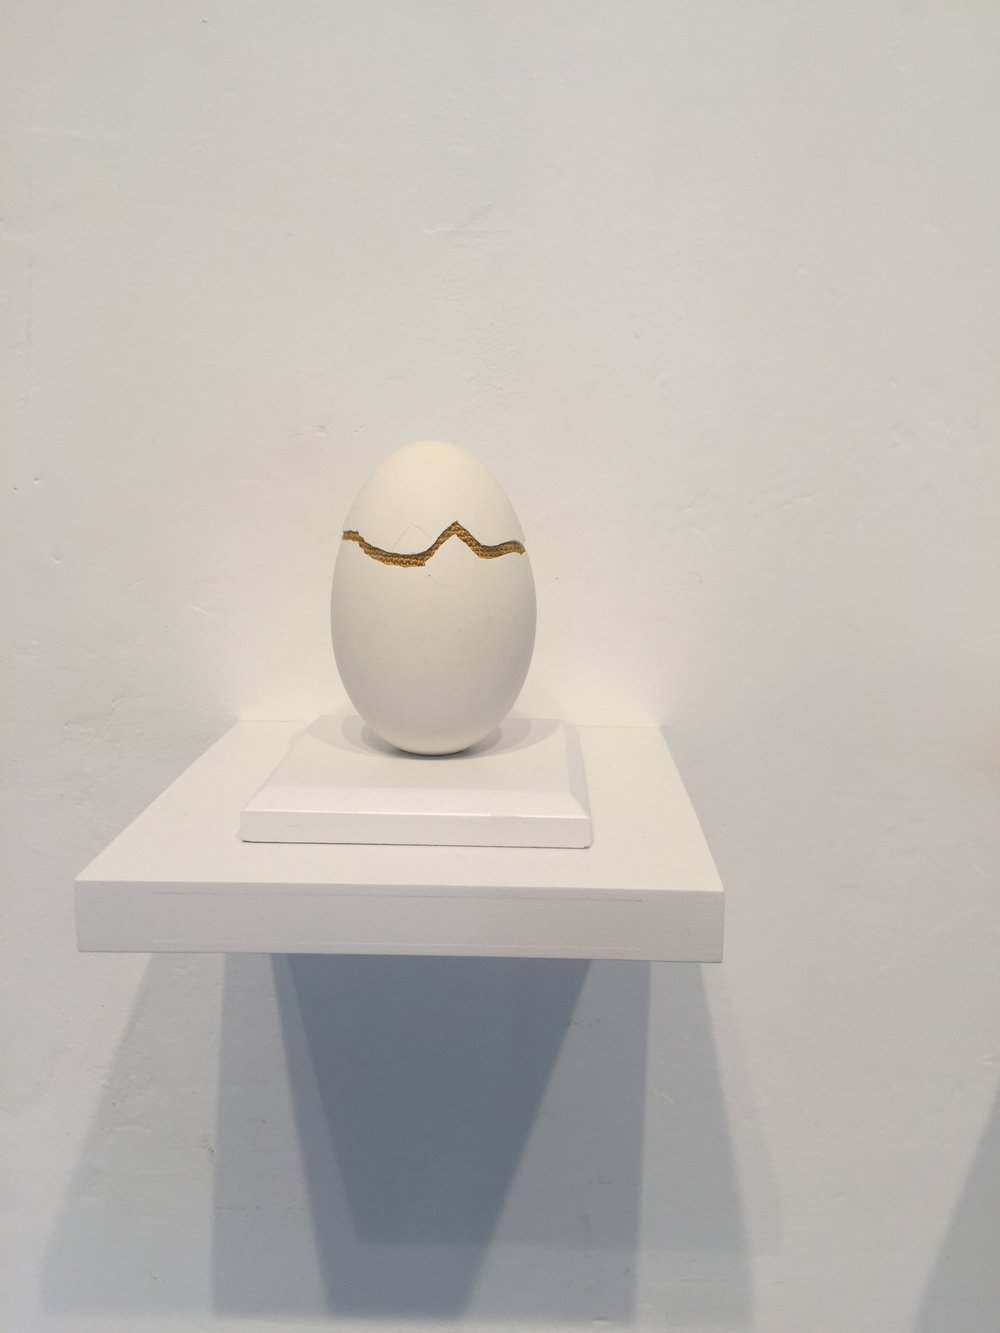 """Esther Traugot, """"Patched Goose Egg #5,"""" 2018, goose egg shell, dyed cotton string, wood mount and shelf, 4.75 x 6 x 6 inches"""